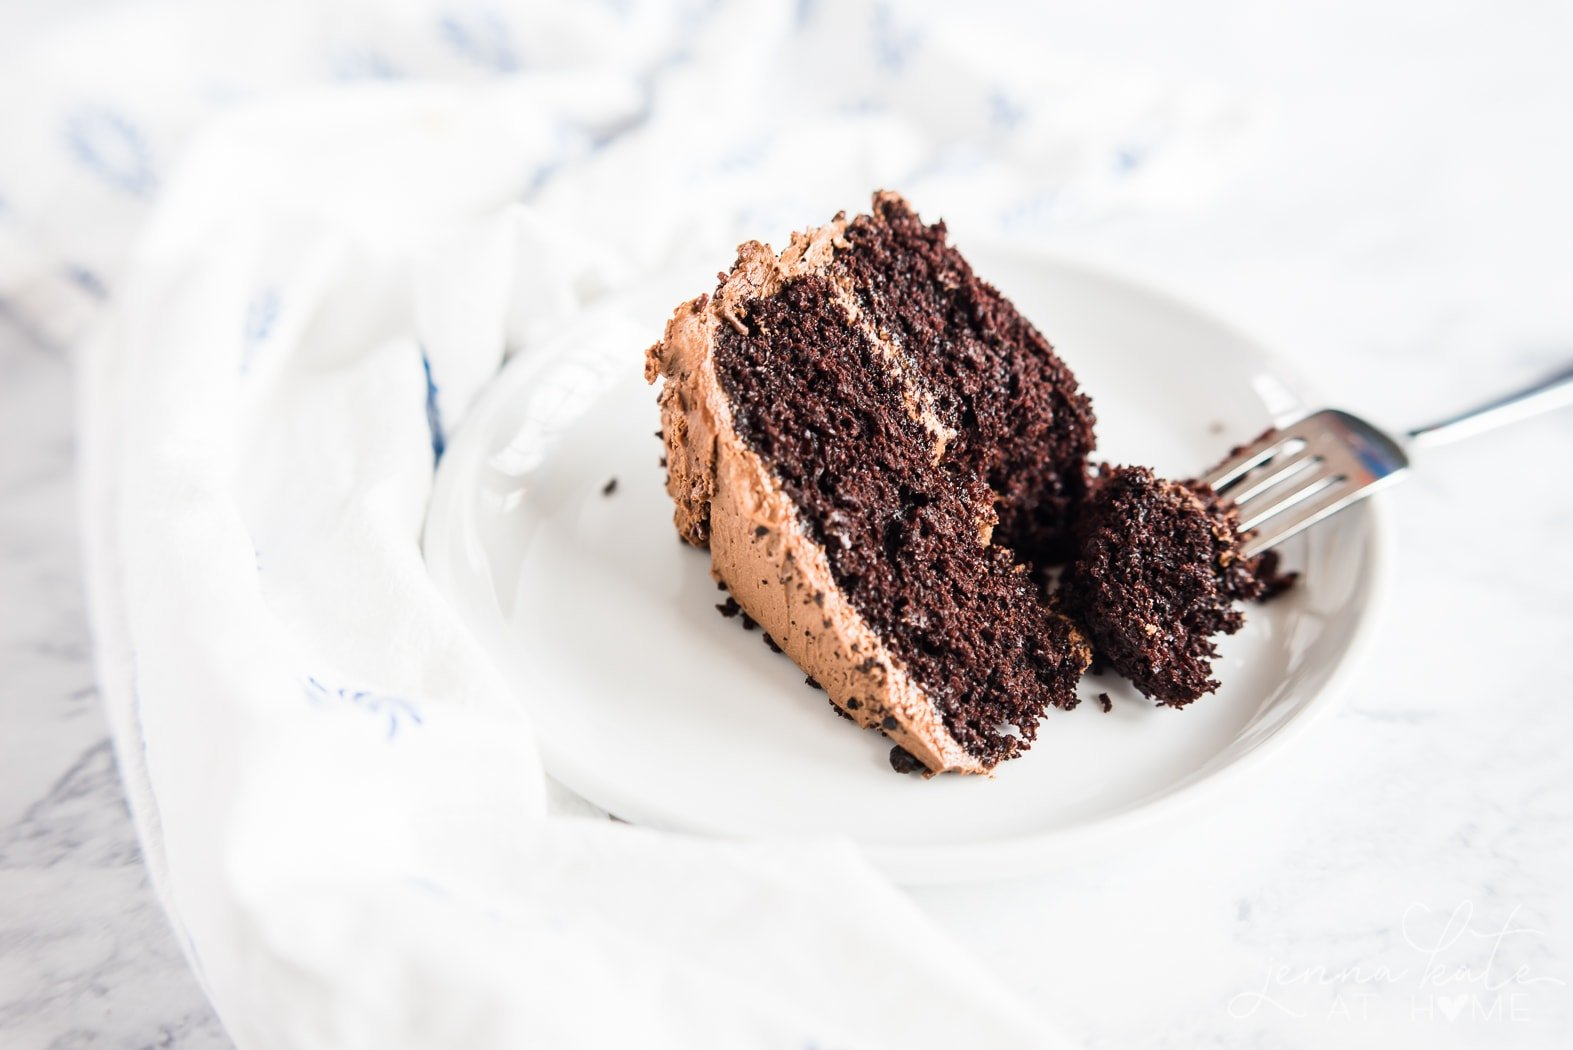 Best ever chocolate buttercream frosting on a piece of birthday cake